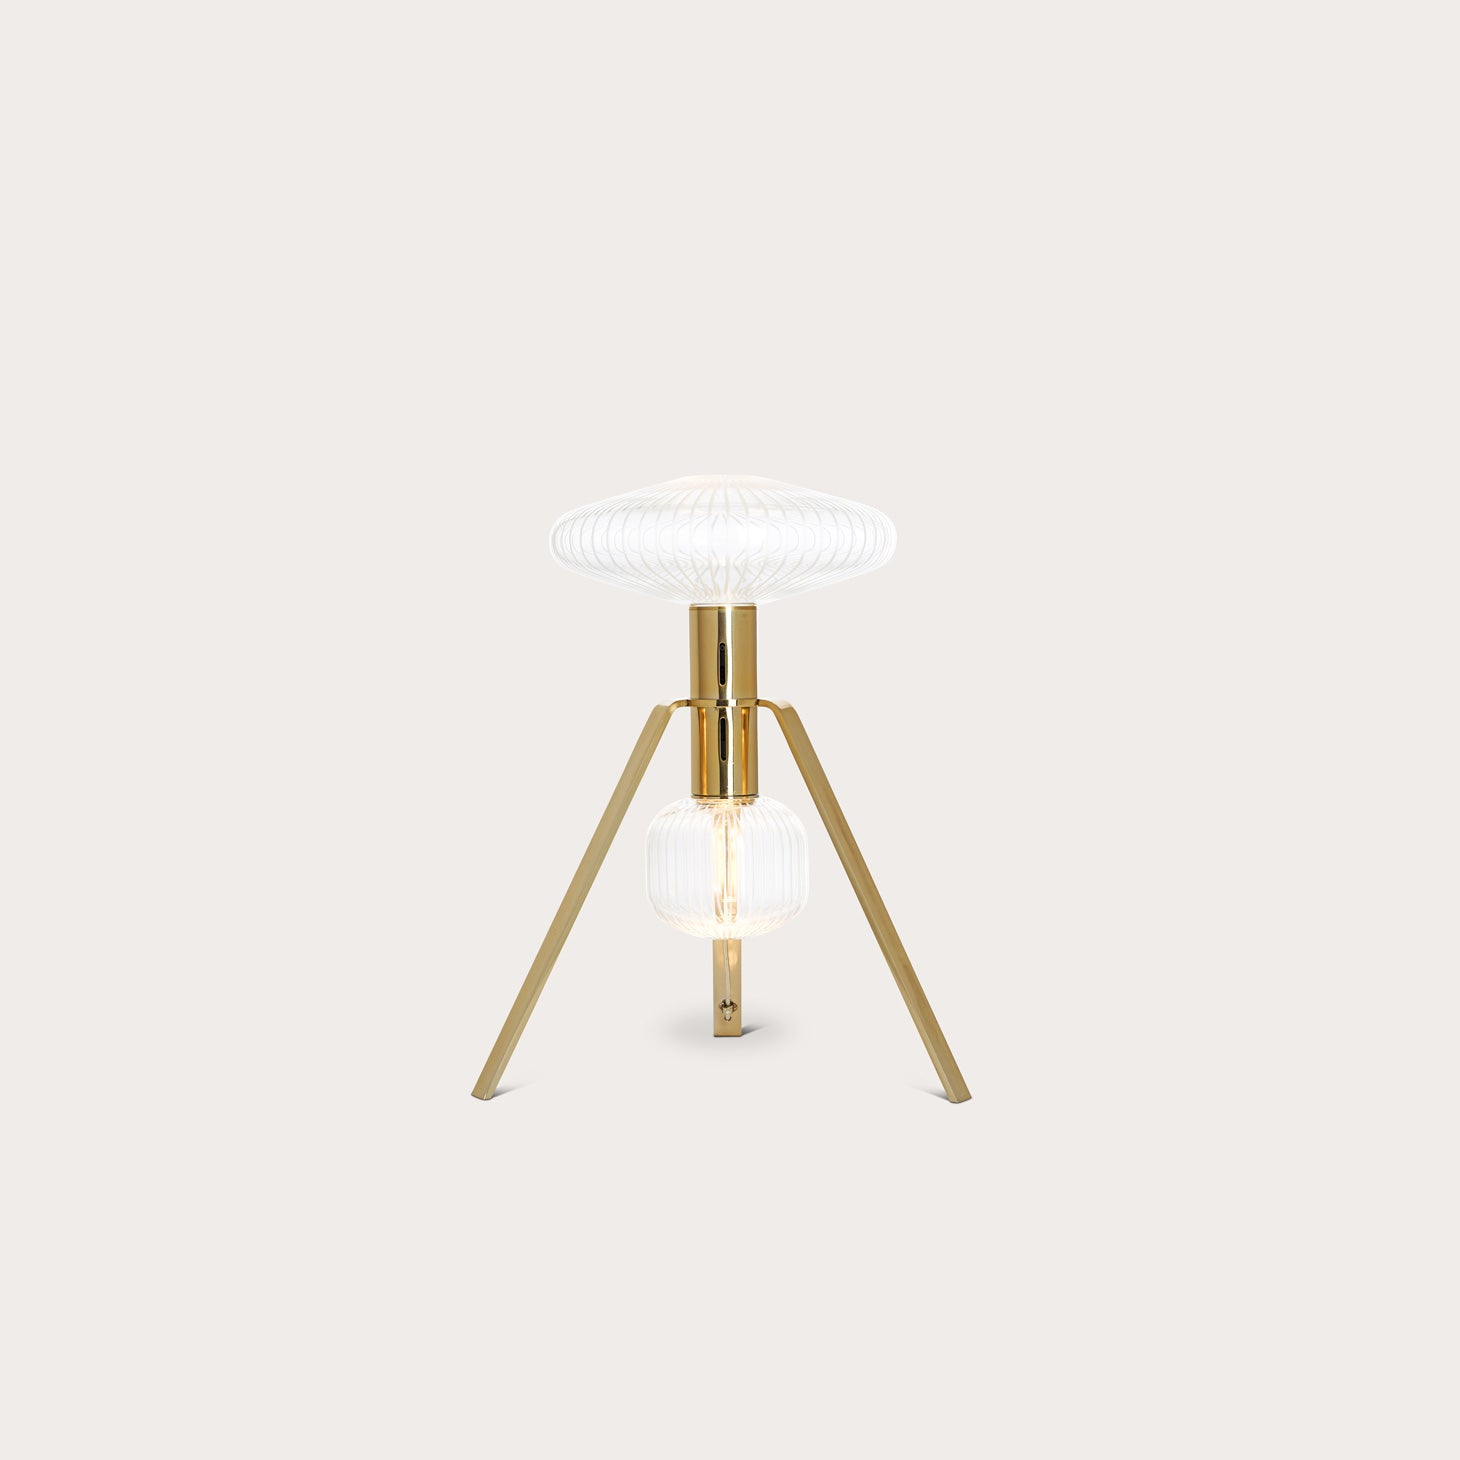 Cipher Table Lamp Small Lighting Yabu Pushelberg Designer Furniture Sku: 110-160-10003